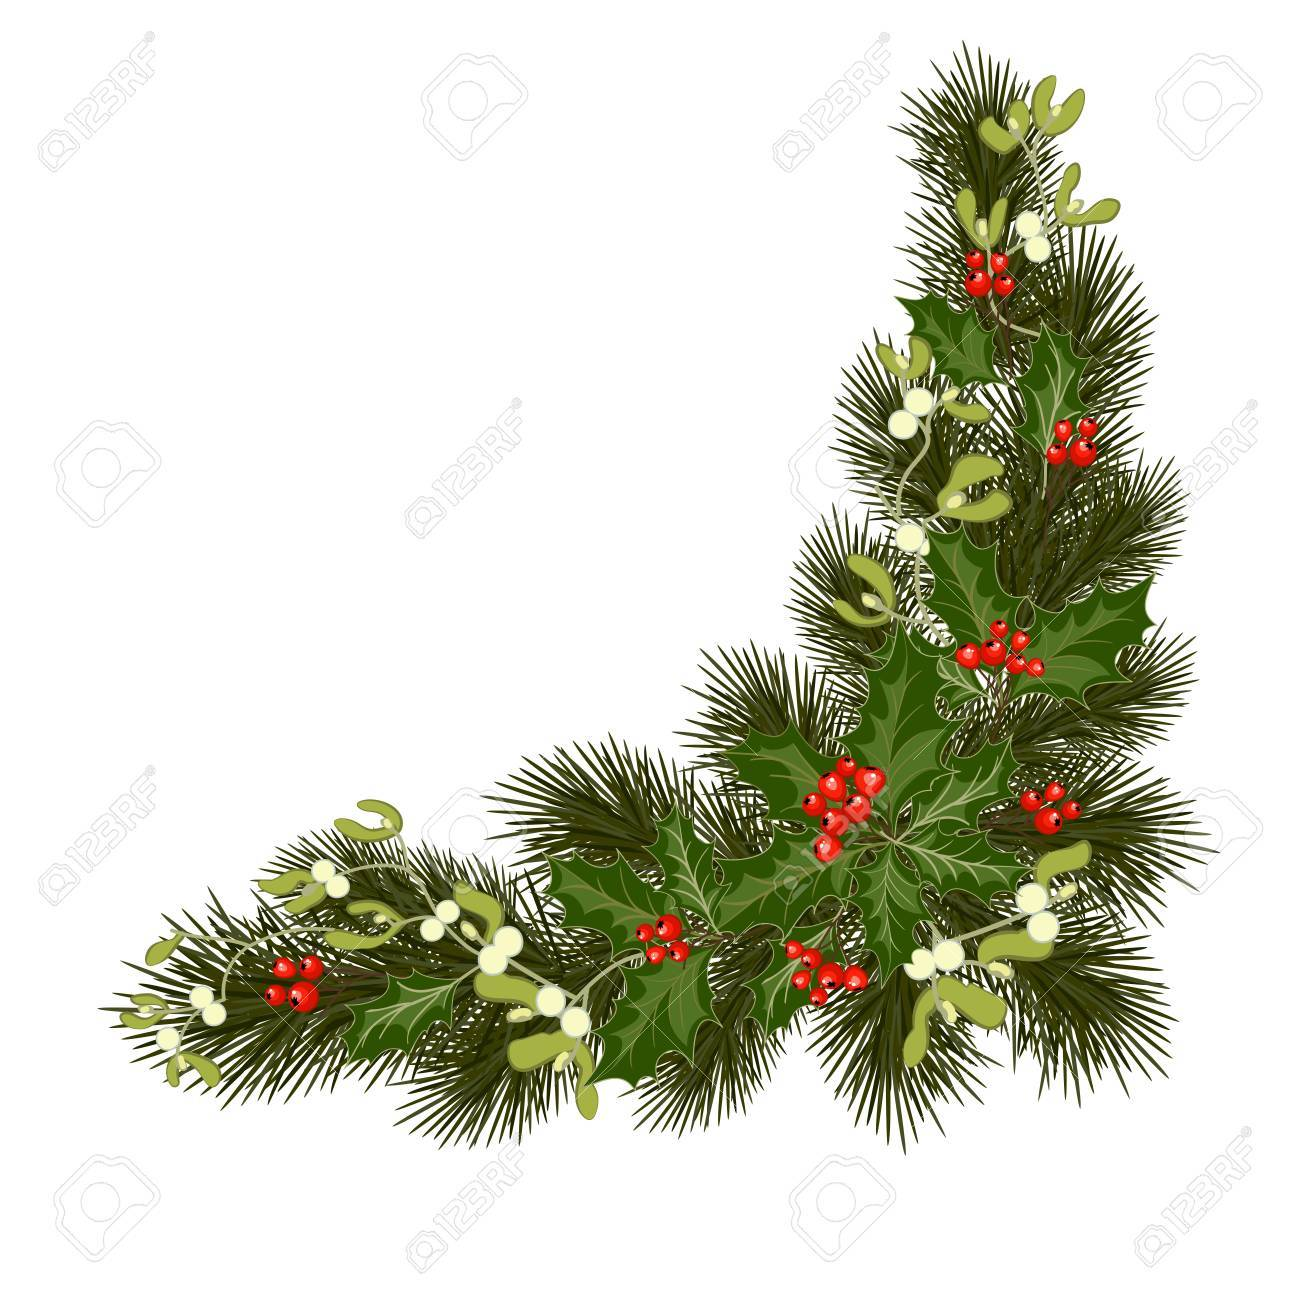 christmas decorations with fir tree holly berries mistletoe and decorative elements design